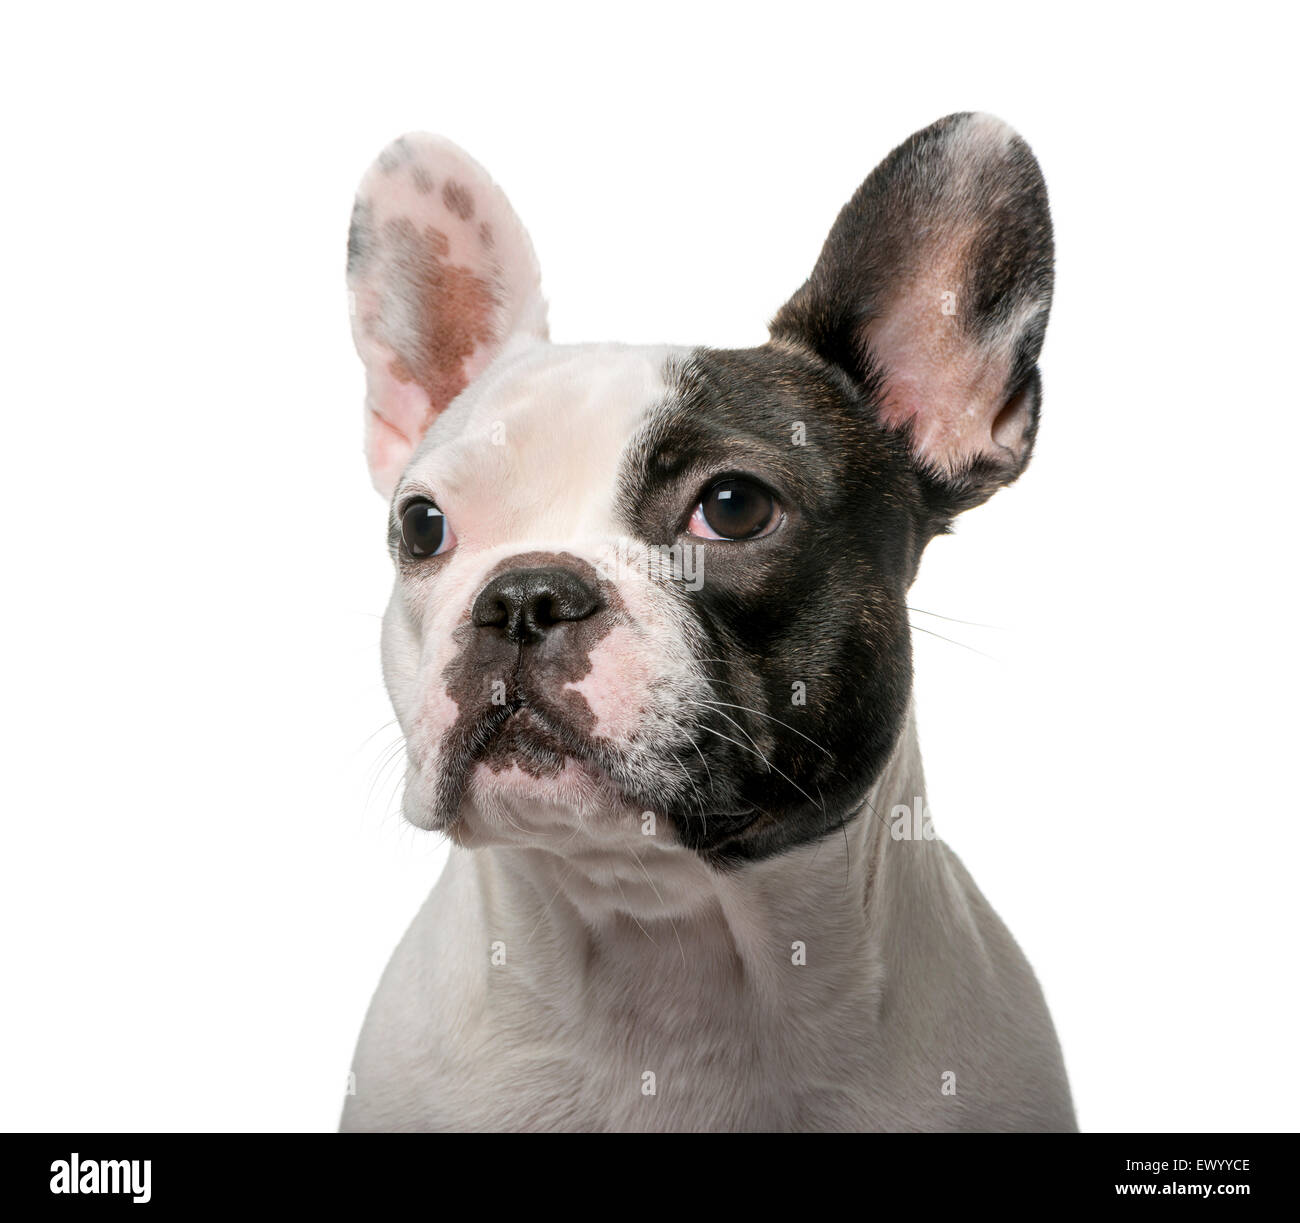 French Bulldog (9 months old) in front of a white background - Stock Image